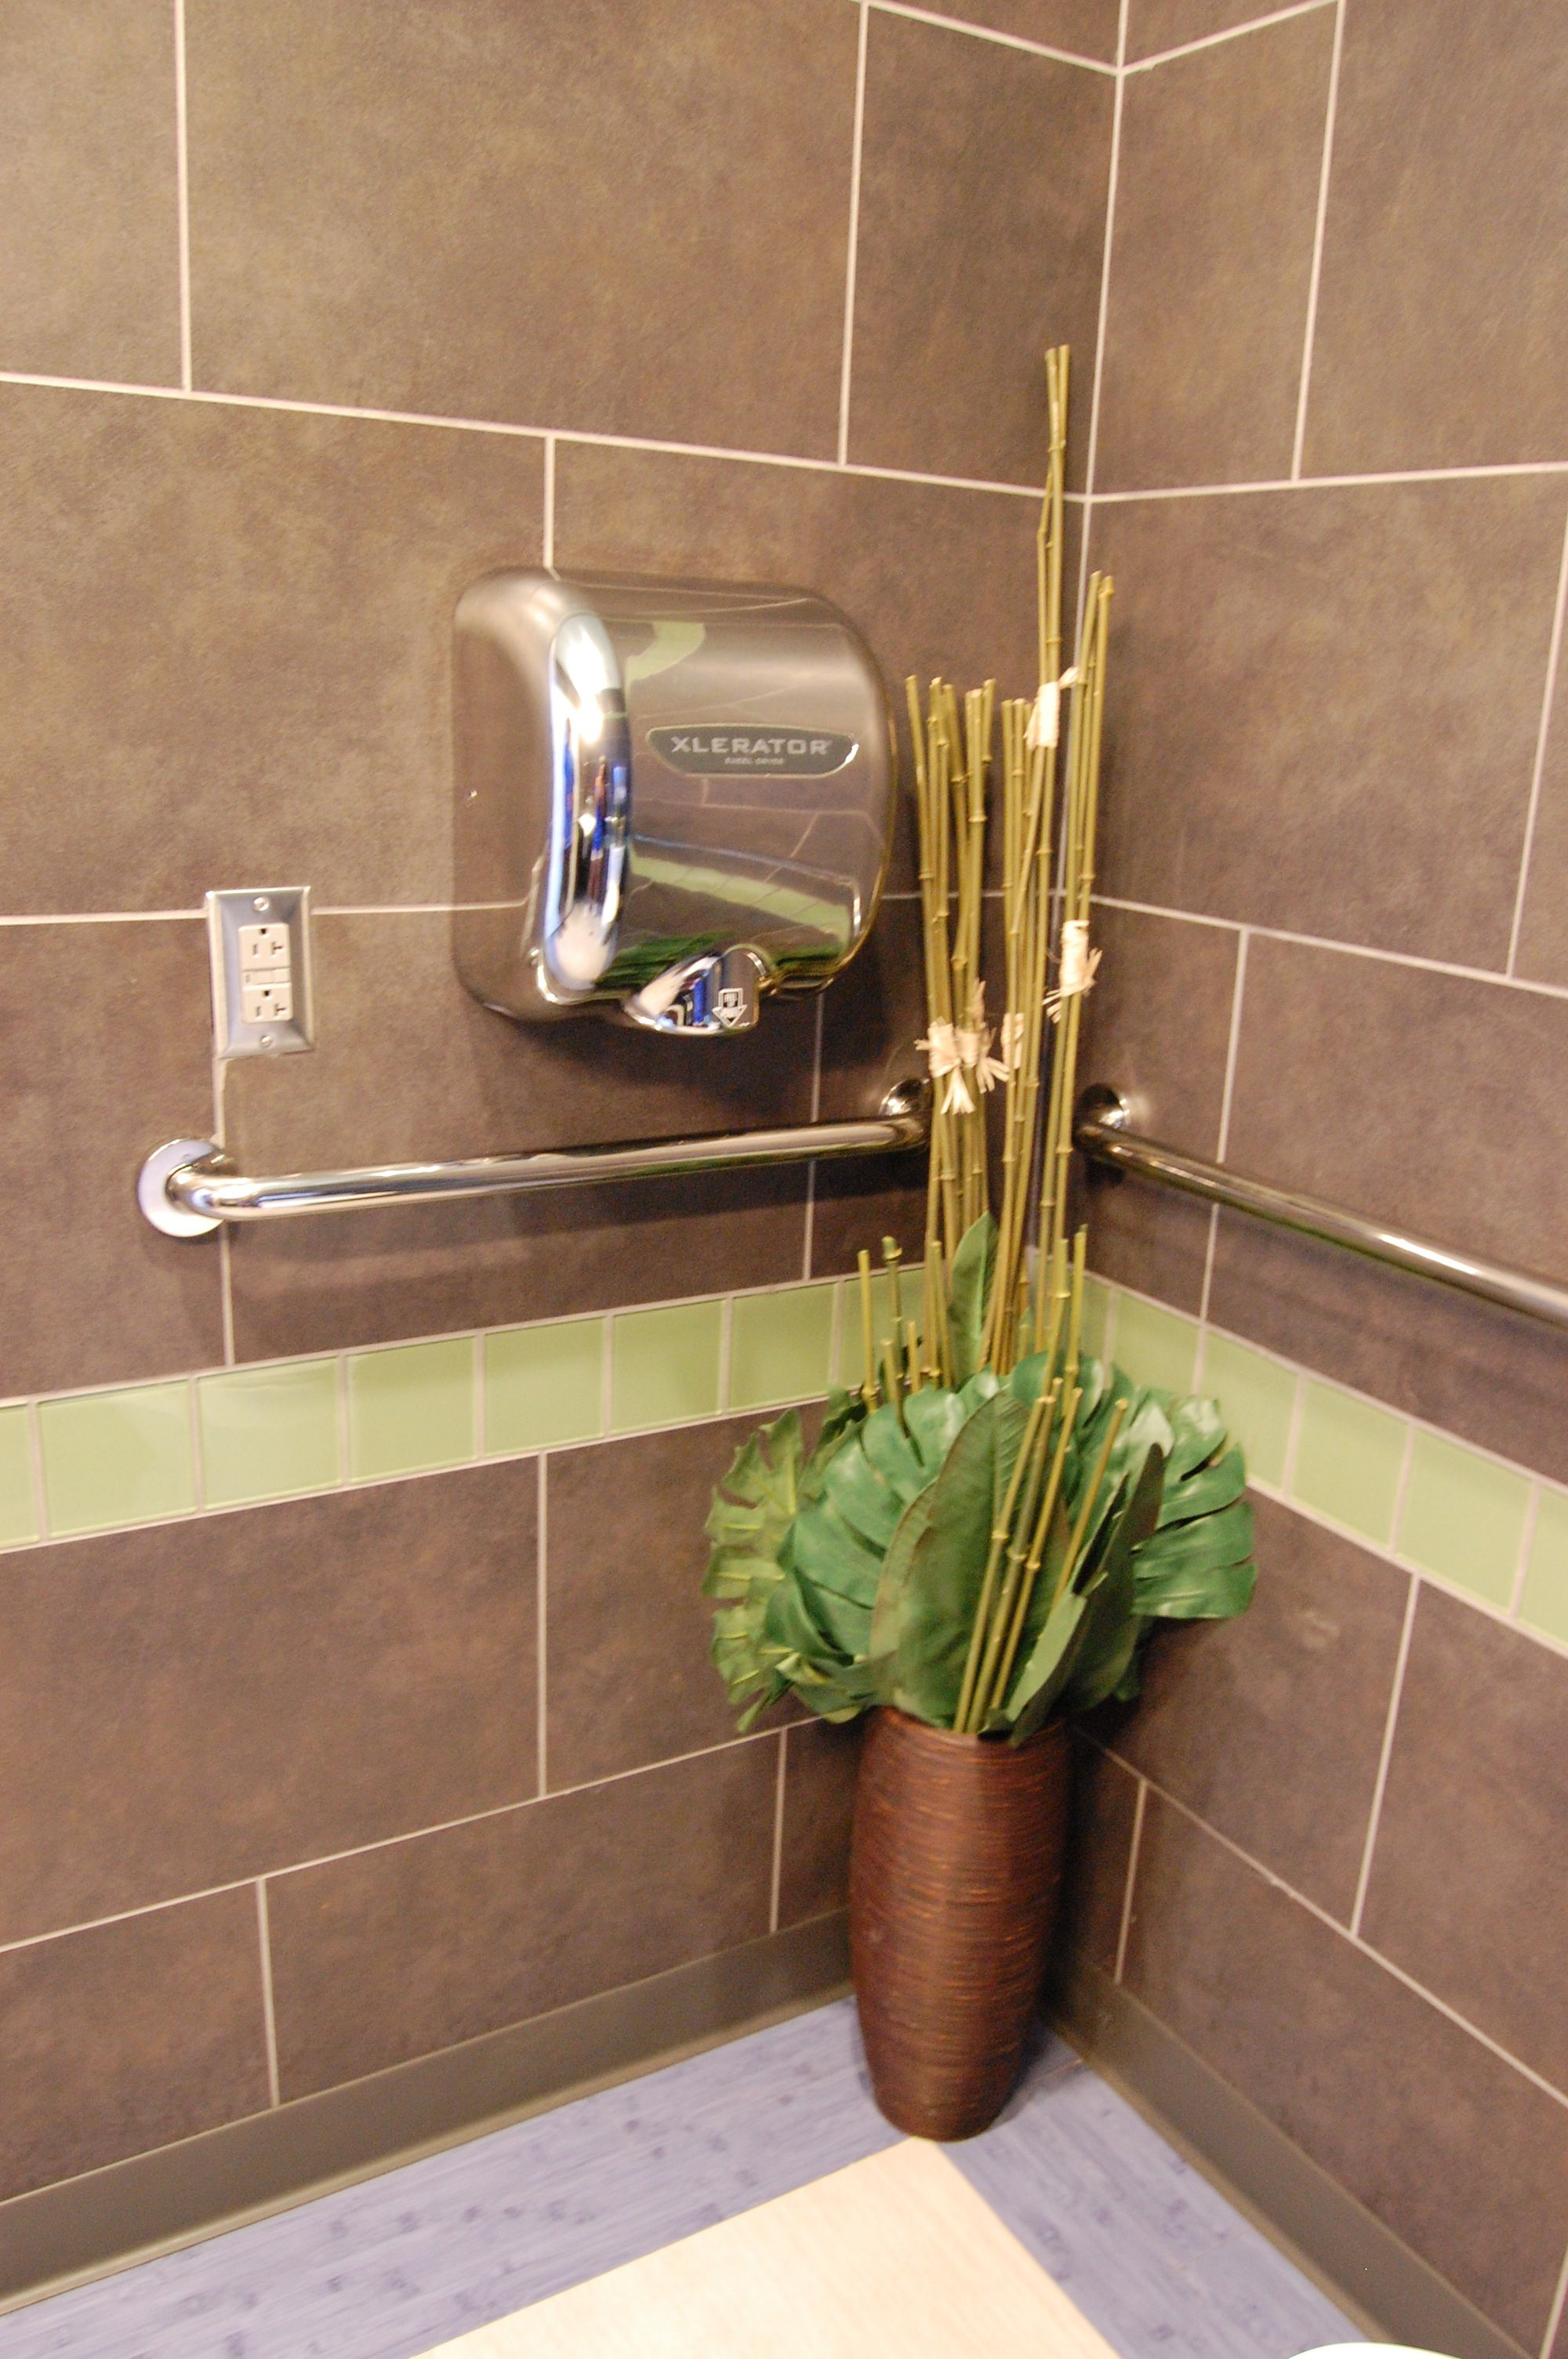 Xlerator In A Home Bathroom Hand Dryers In The Home Pinterest